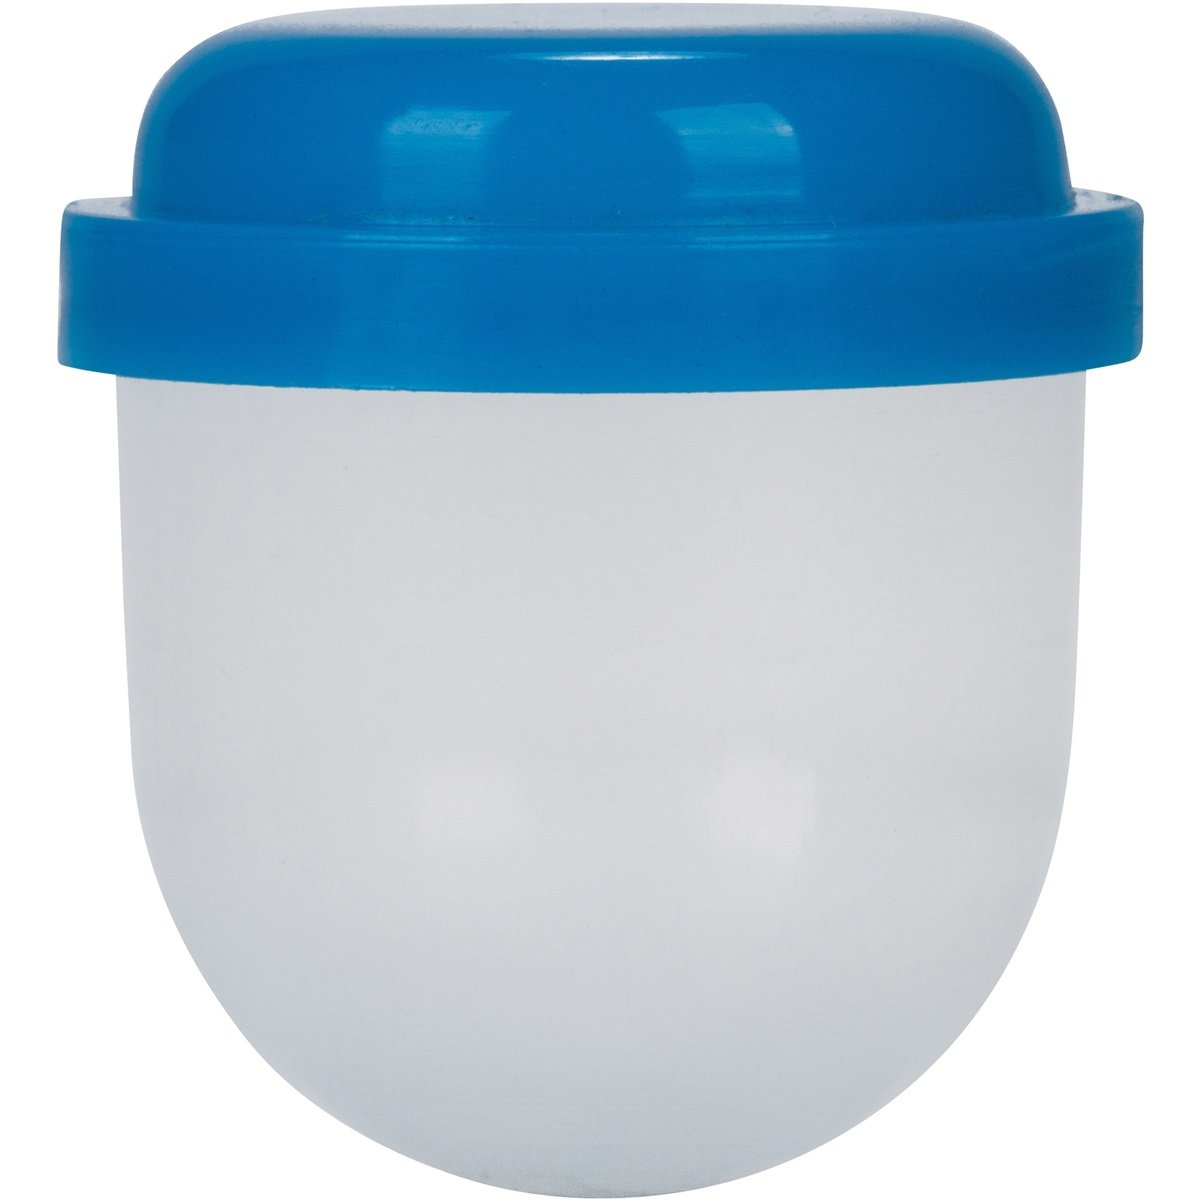 1'' Acorn Capsules: Pink, Blue, Purple Vending Machine Balls, Empty Cases for Gumball Containers, Toy Stands, and Party Favors or Bath Bombs, Rainbow Colored Lids and Clear Bottoms Girls by Candy Machines (Image #8)